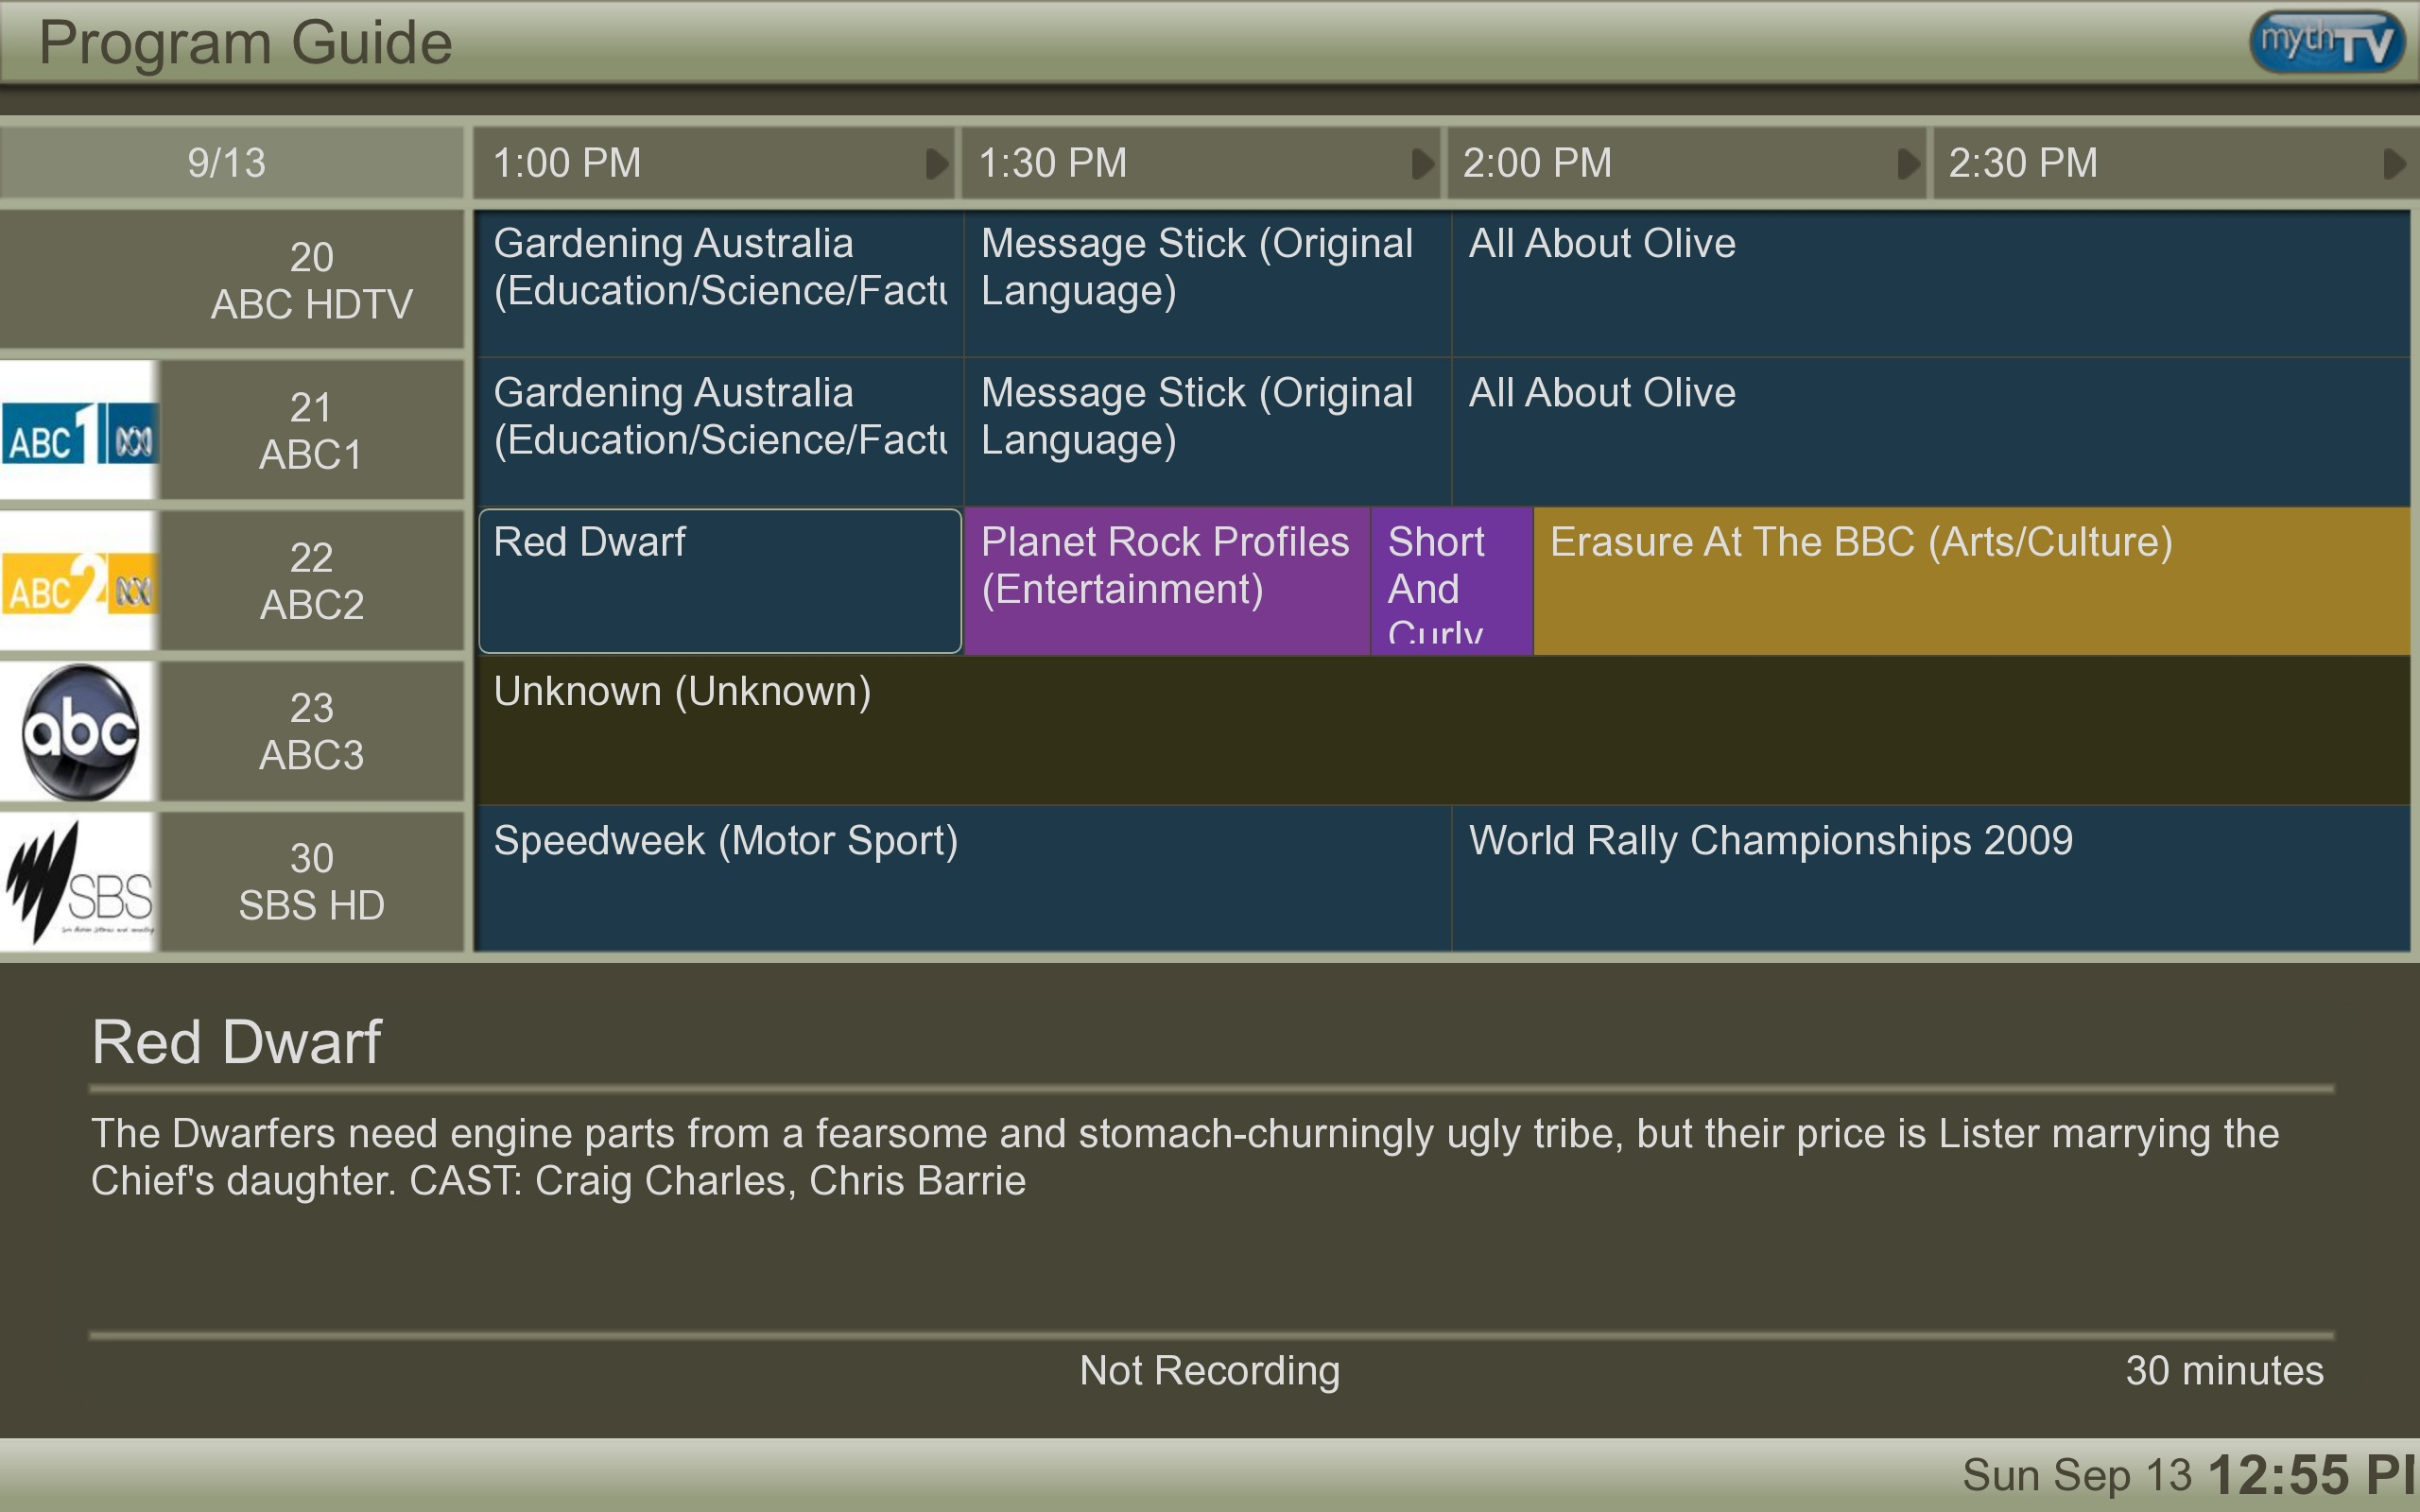 Figure 1: MythTV Program Guide